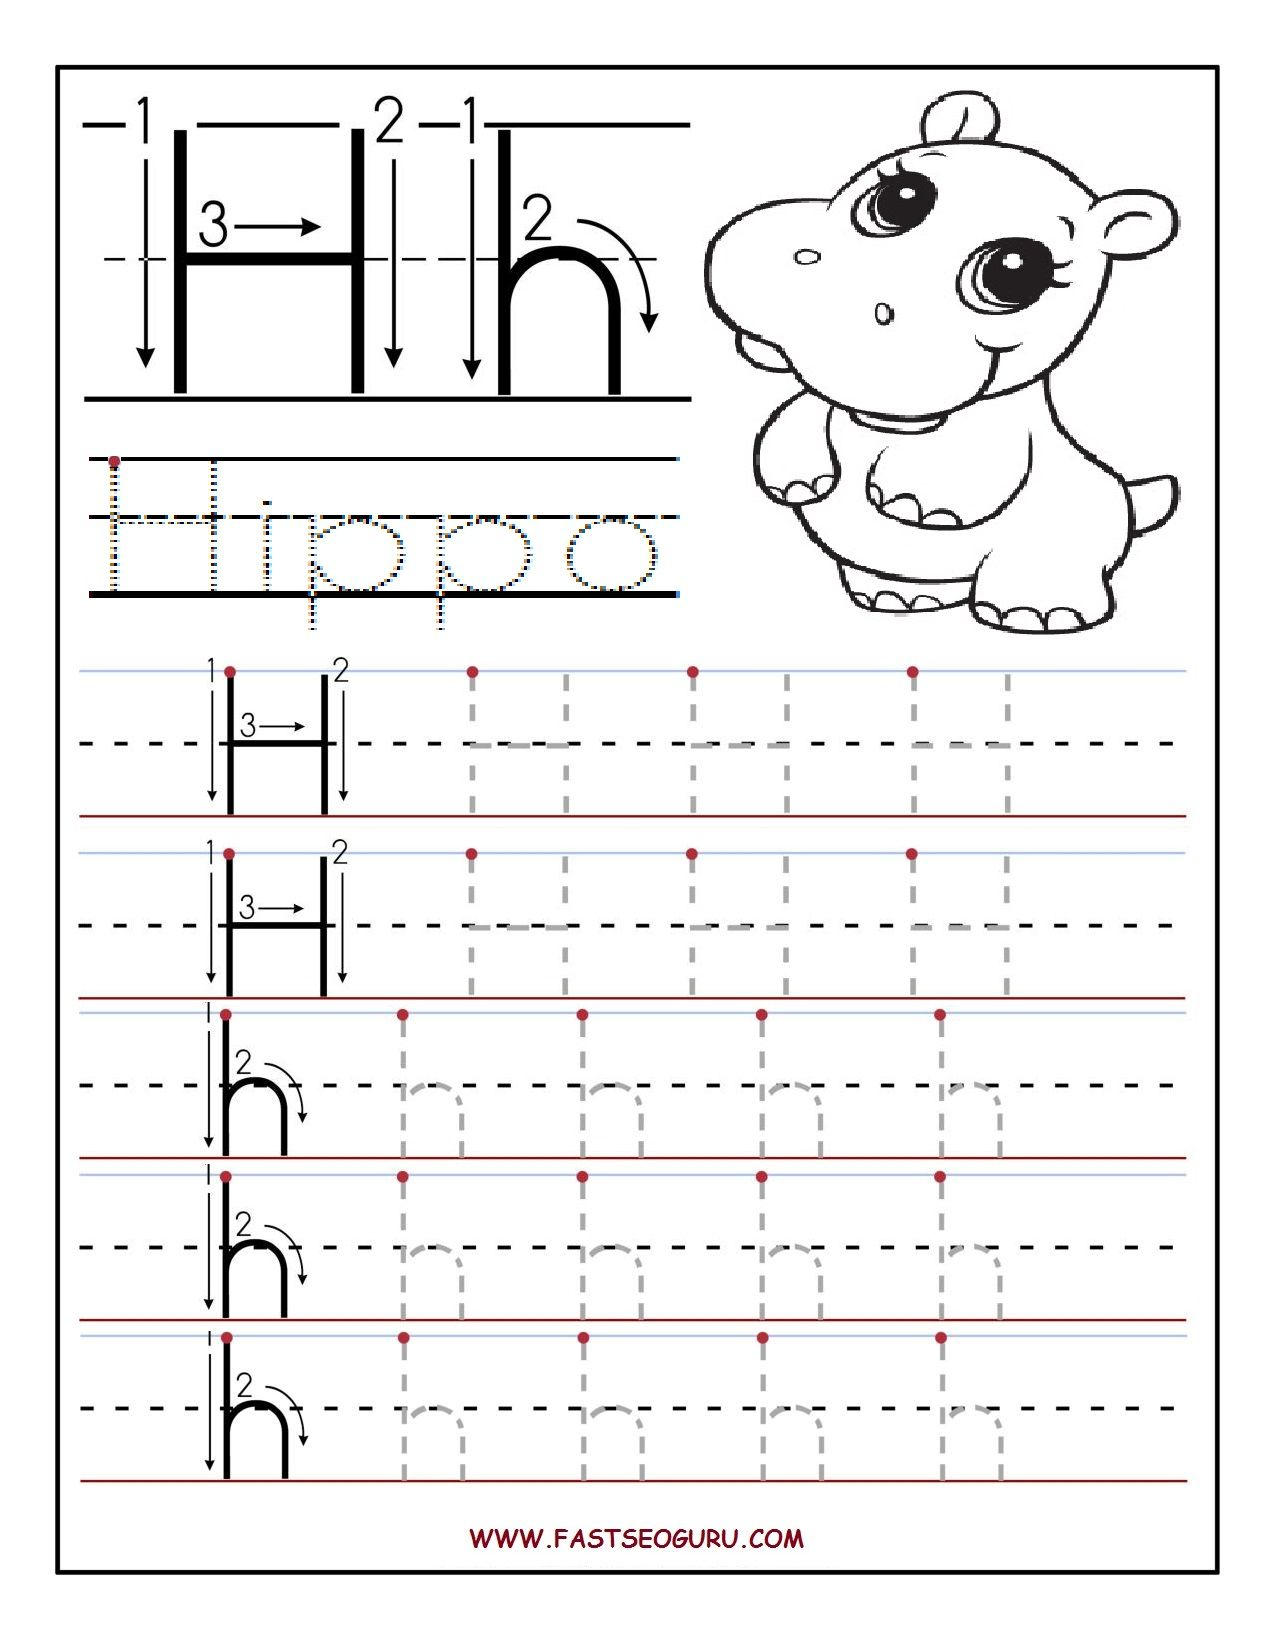 Printable letter H tracing worksheets for preschool – Abc Trace Worksheet